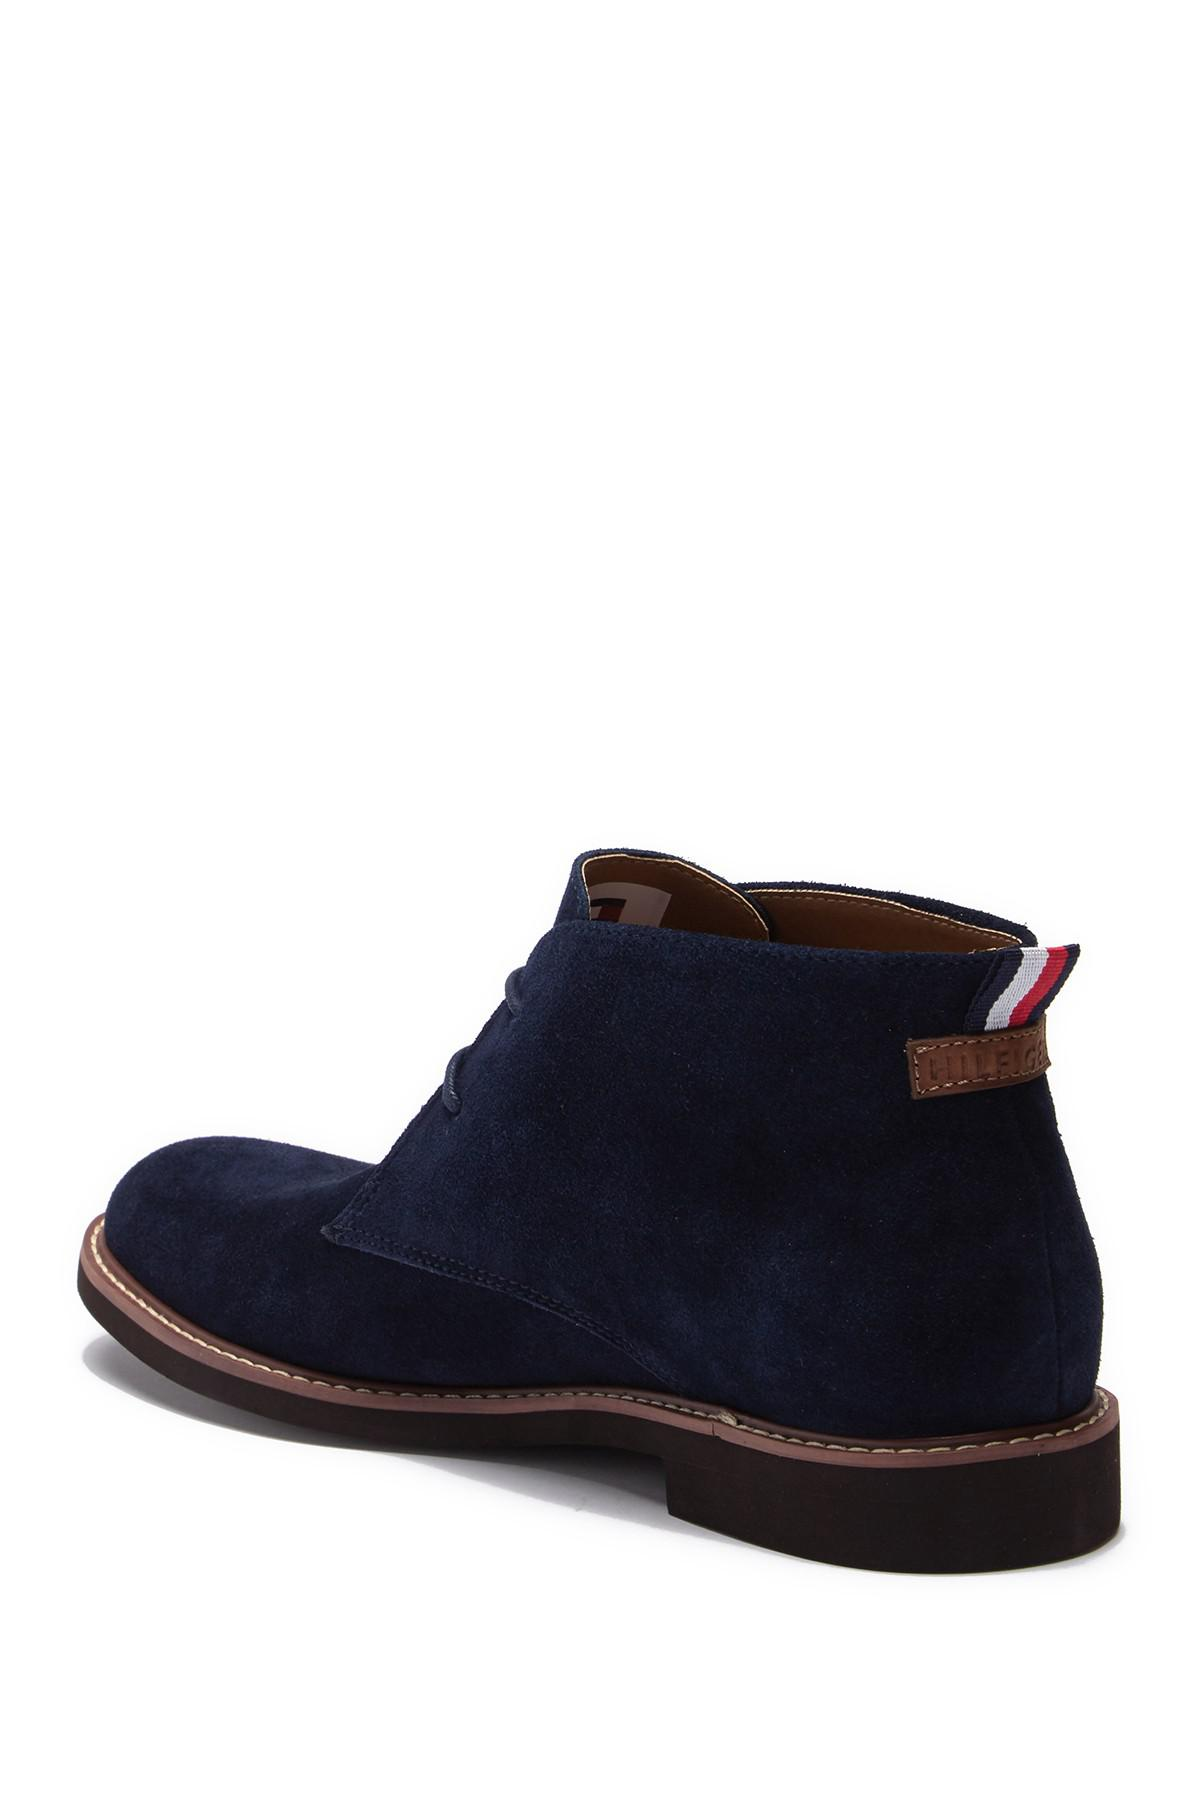 6b5bd36f5 Tommy Hilfiger - Blue Gervis Suede Lace-up Boot for Men - Lyst. View  fullscreen